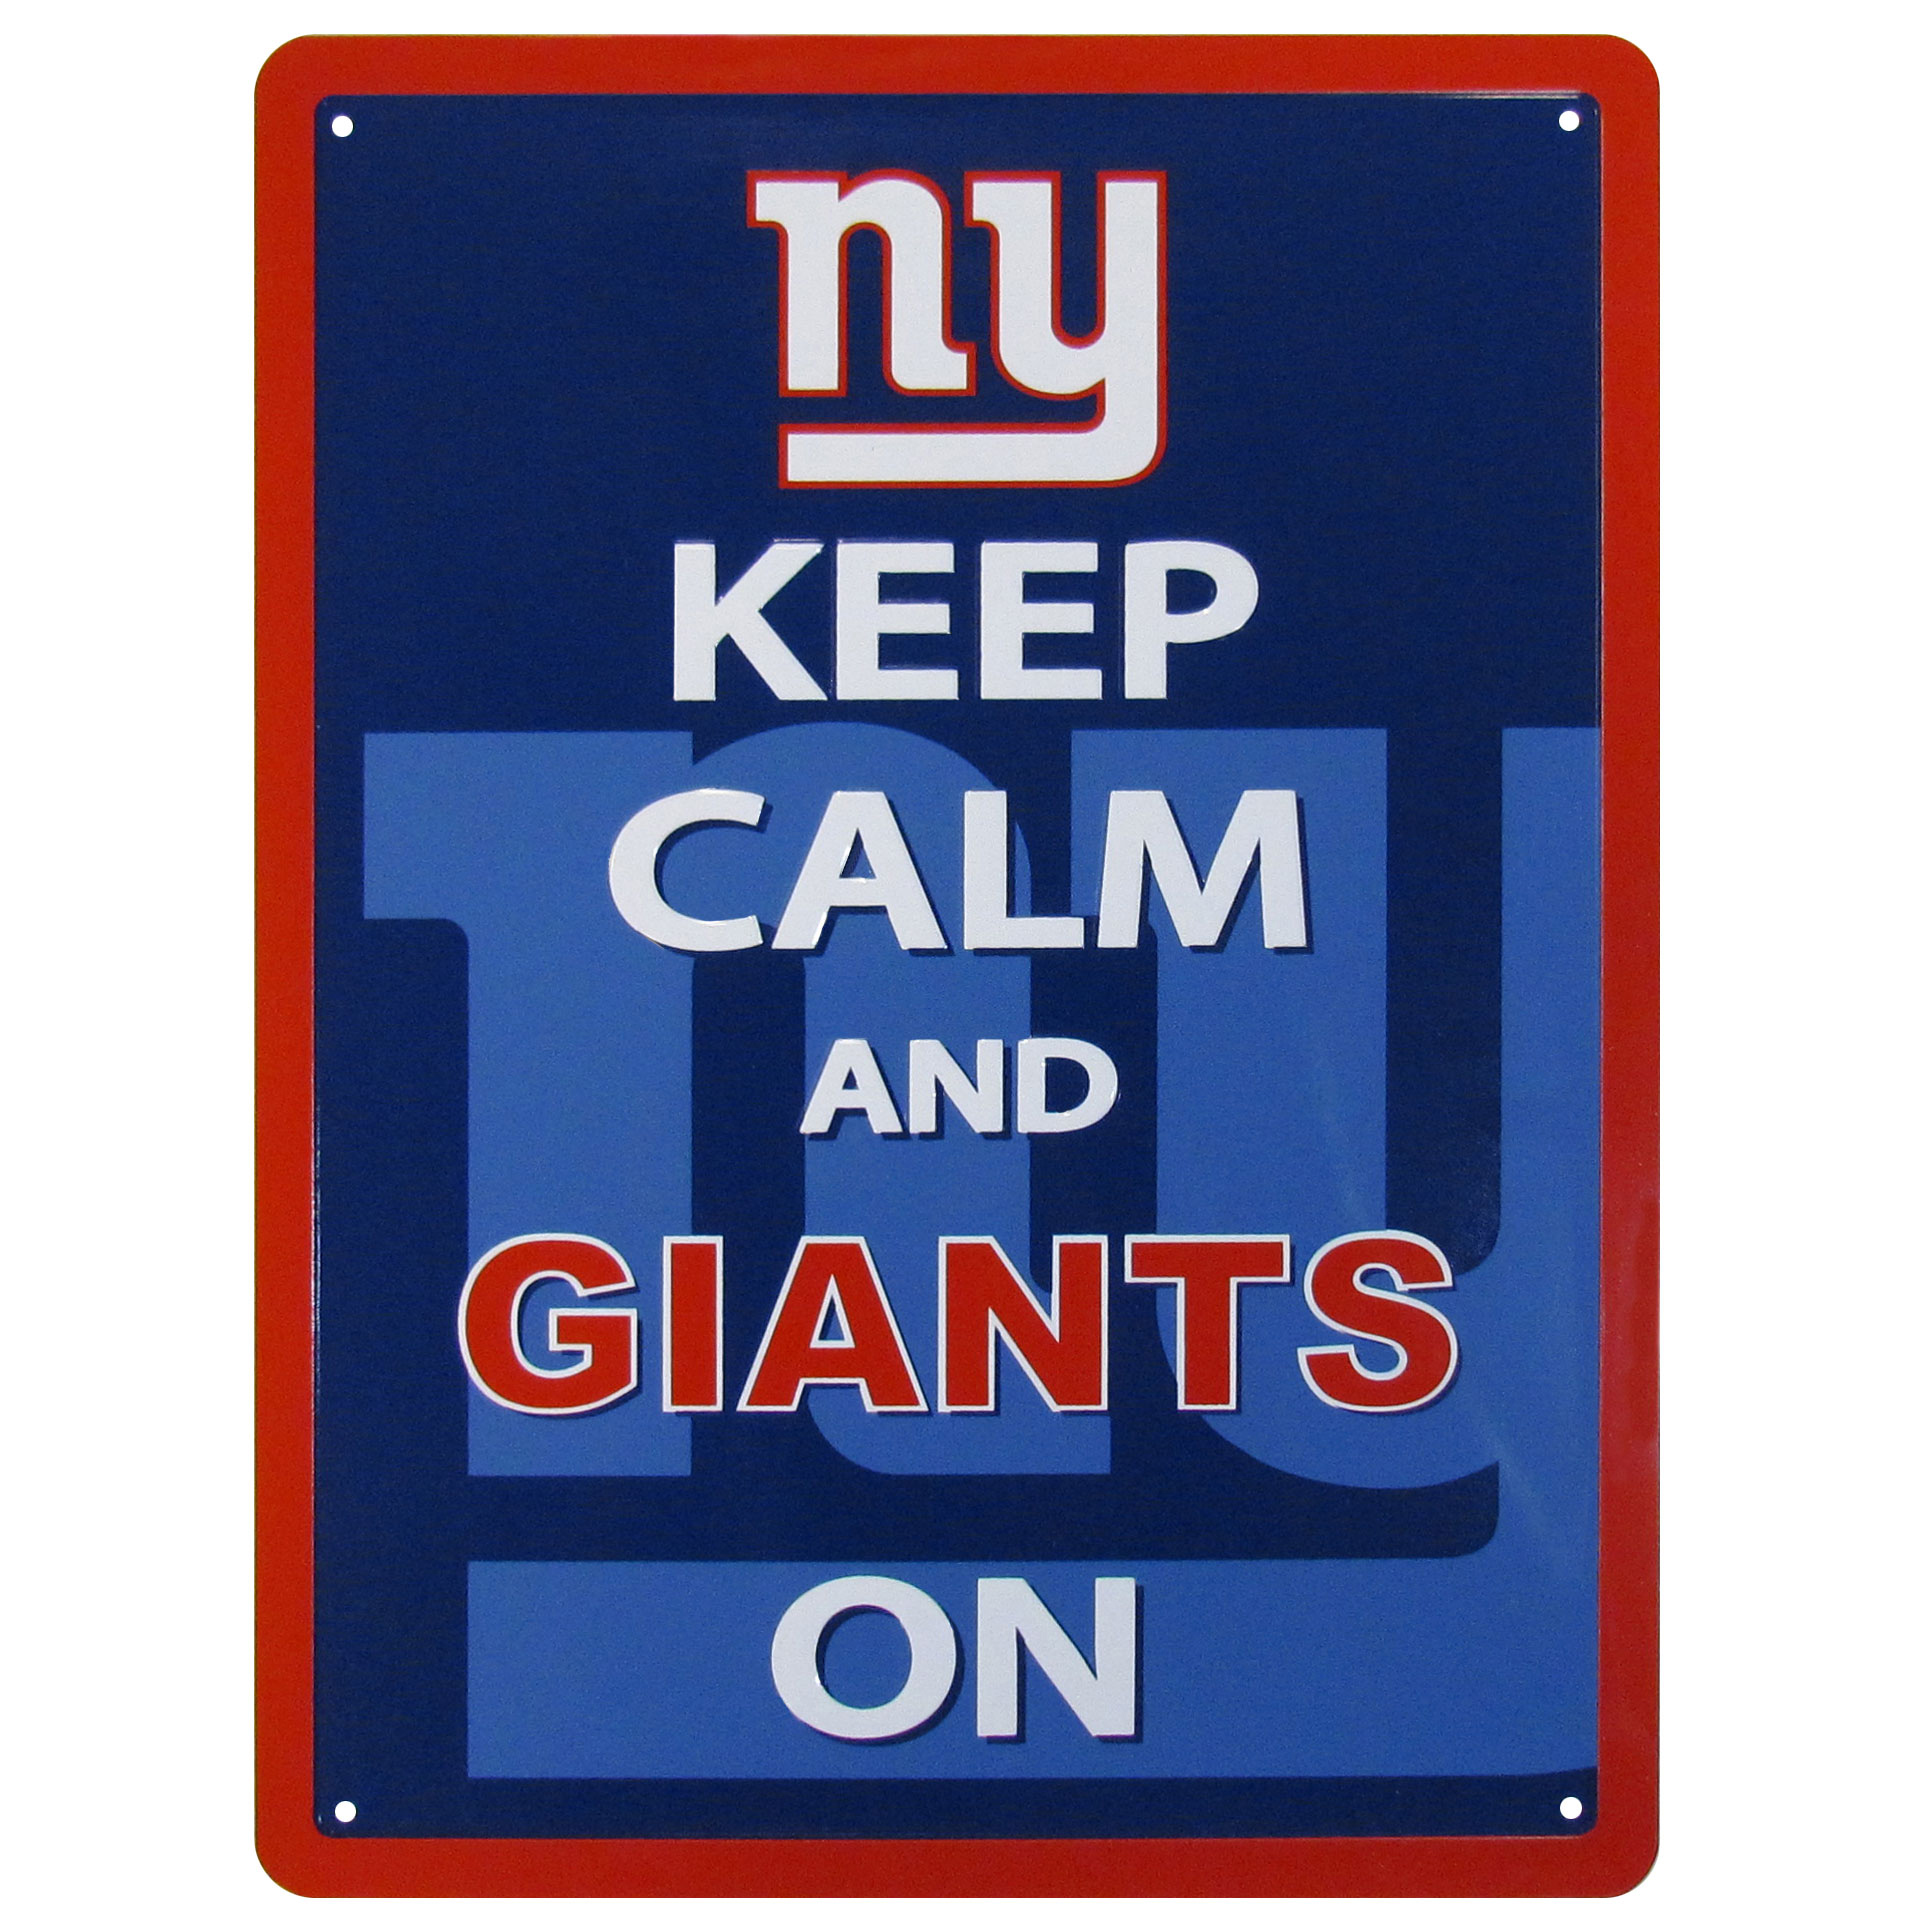 New York Giants Keep Calm Sign - One of the most enduring motivational signs of all time is now available with your beloved New York Giants logo. The 9 inch by 12 inch sign is a must have for any fan cave!